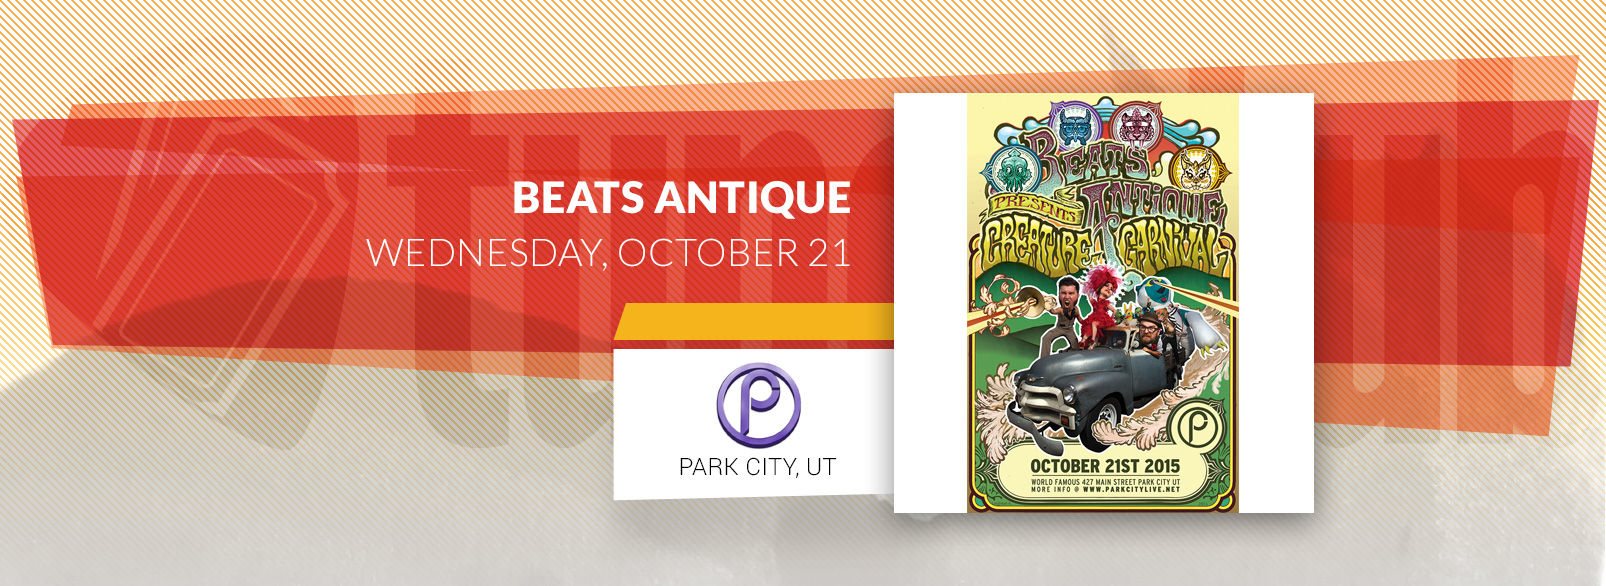 Beats Antique @ Park City Live